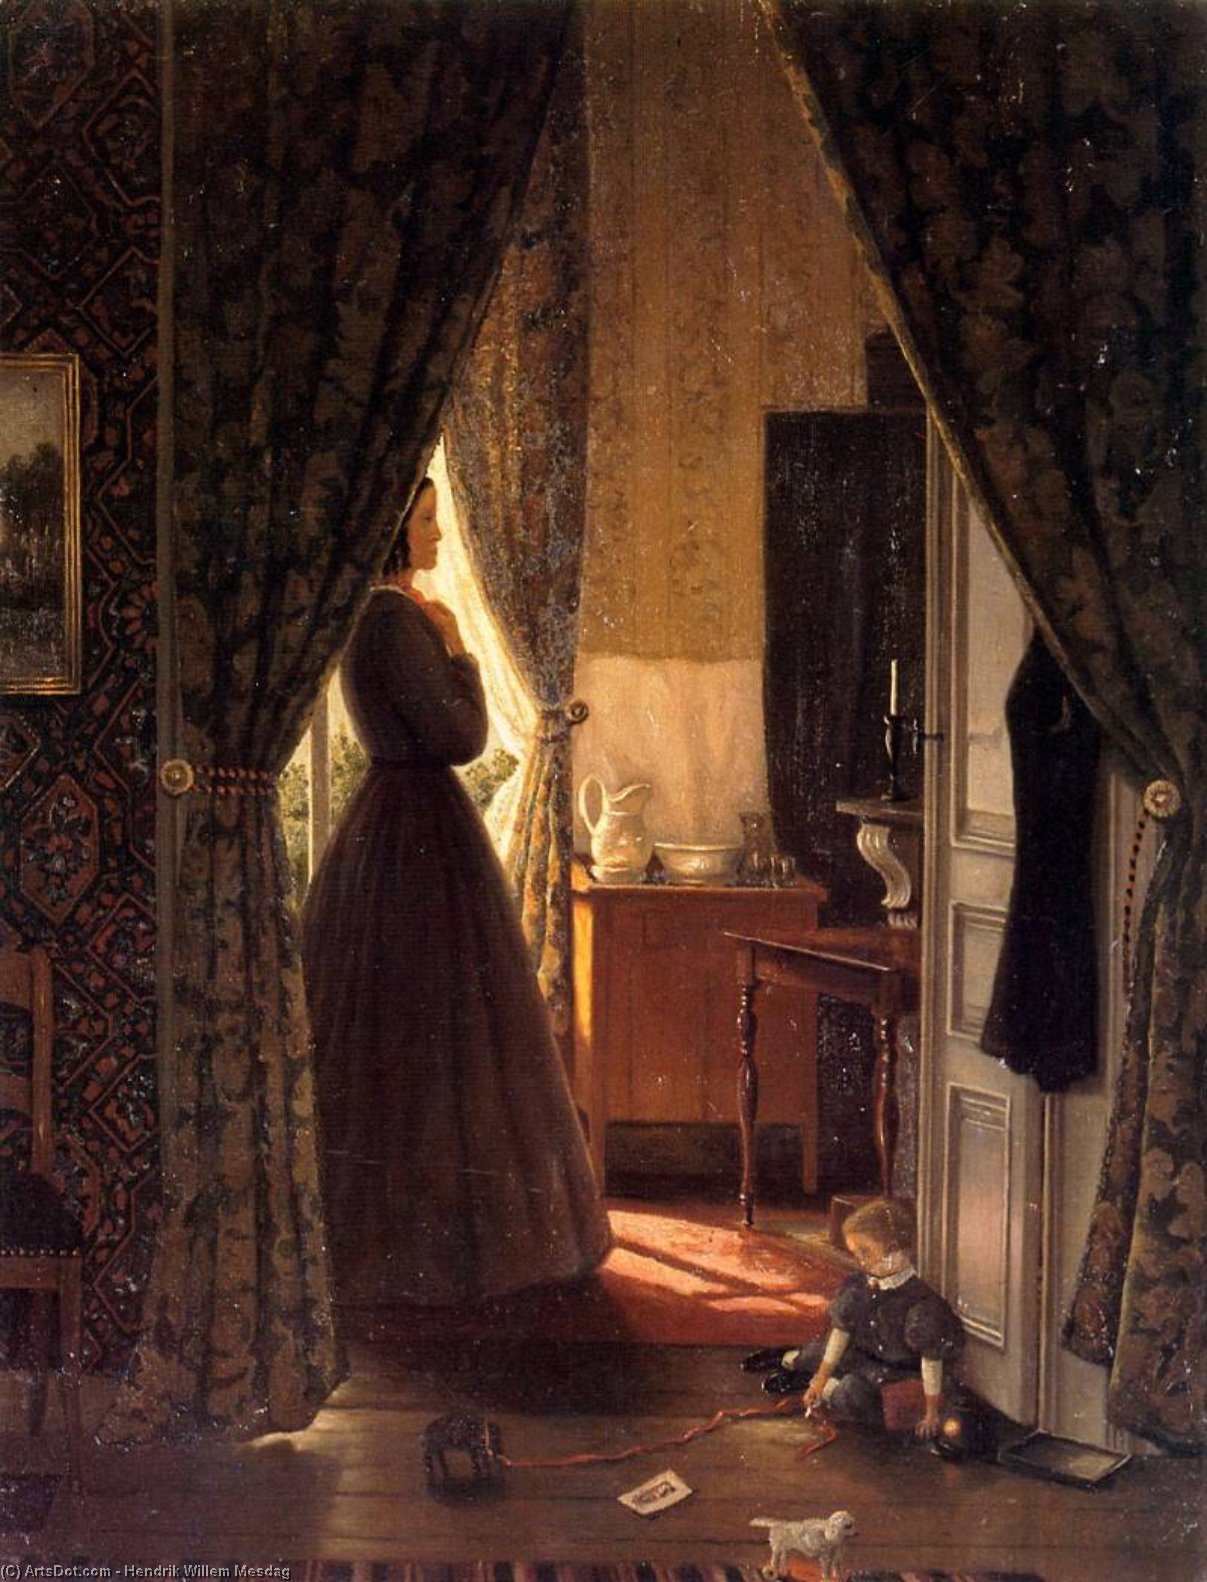 woman in interior sun by Hendrik Willem Mesdag (1831-1915, Netherlands)